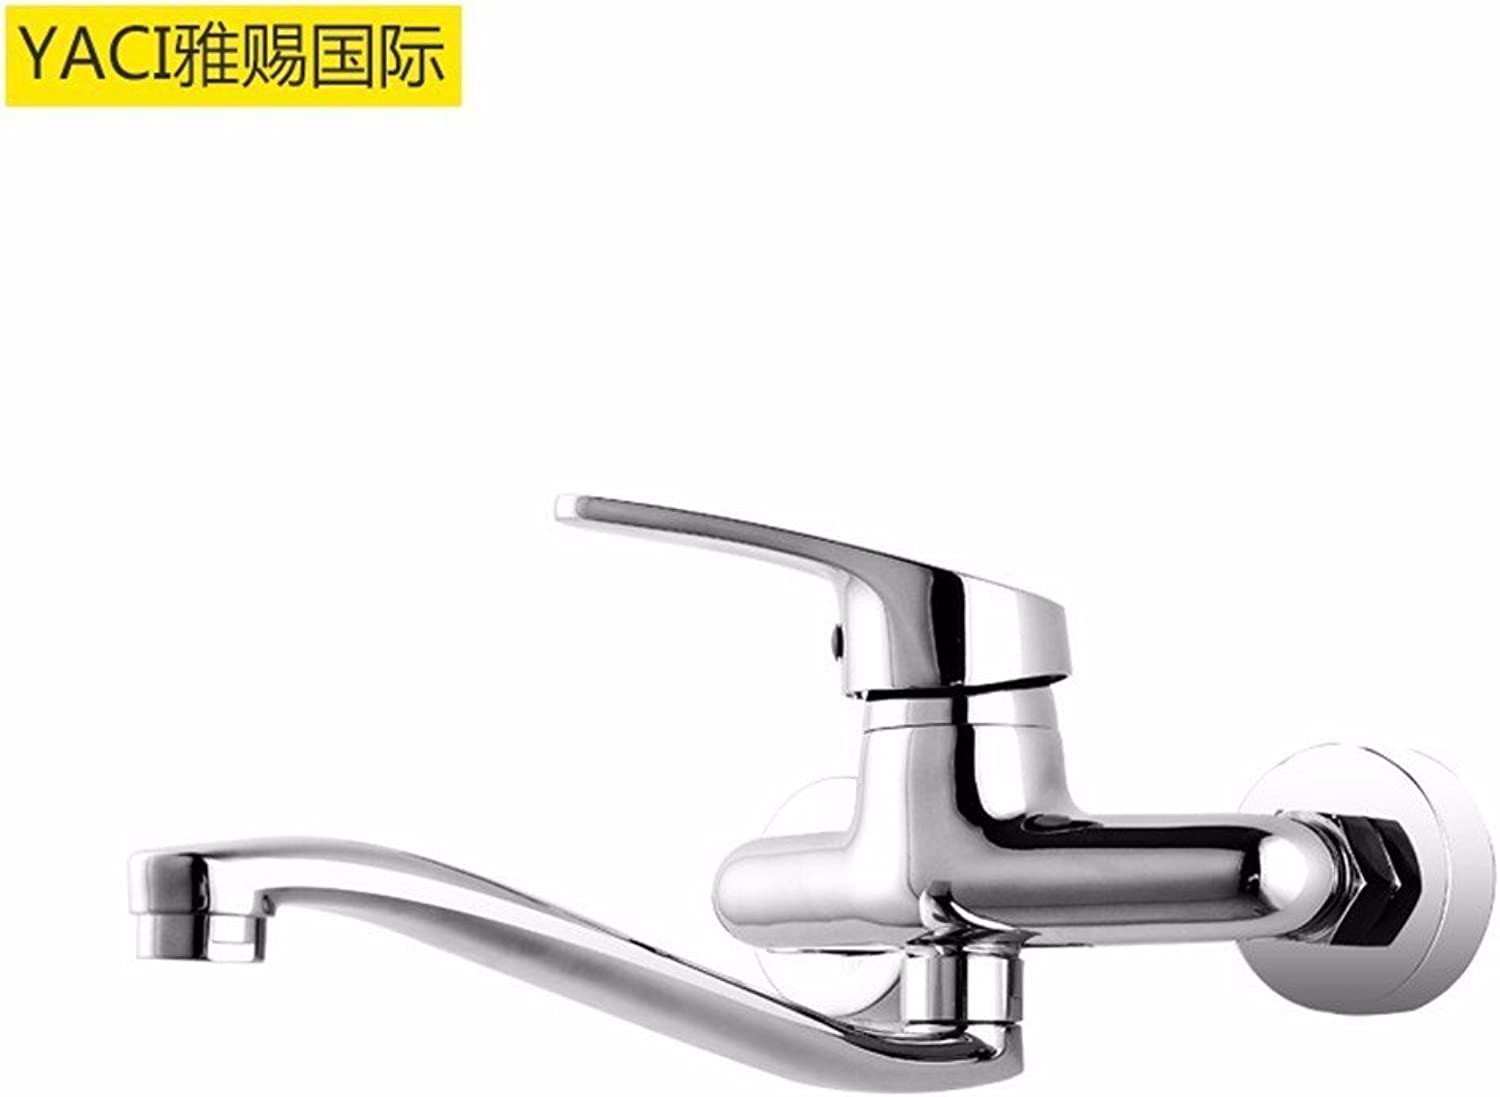 Commercial Lever Pull Down Kitchen Sink Faucet Brass Nordic Modern Minimalist Retro Chrome in-Wall Stainless Steel Waterfall Pure Copper Bathroom Basin Faucet Hotel Kitchen Bathroom Dining Room